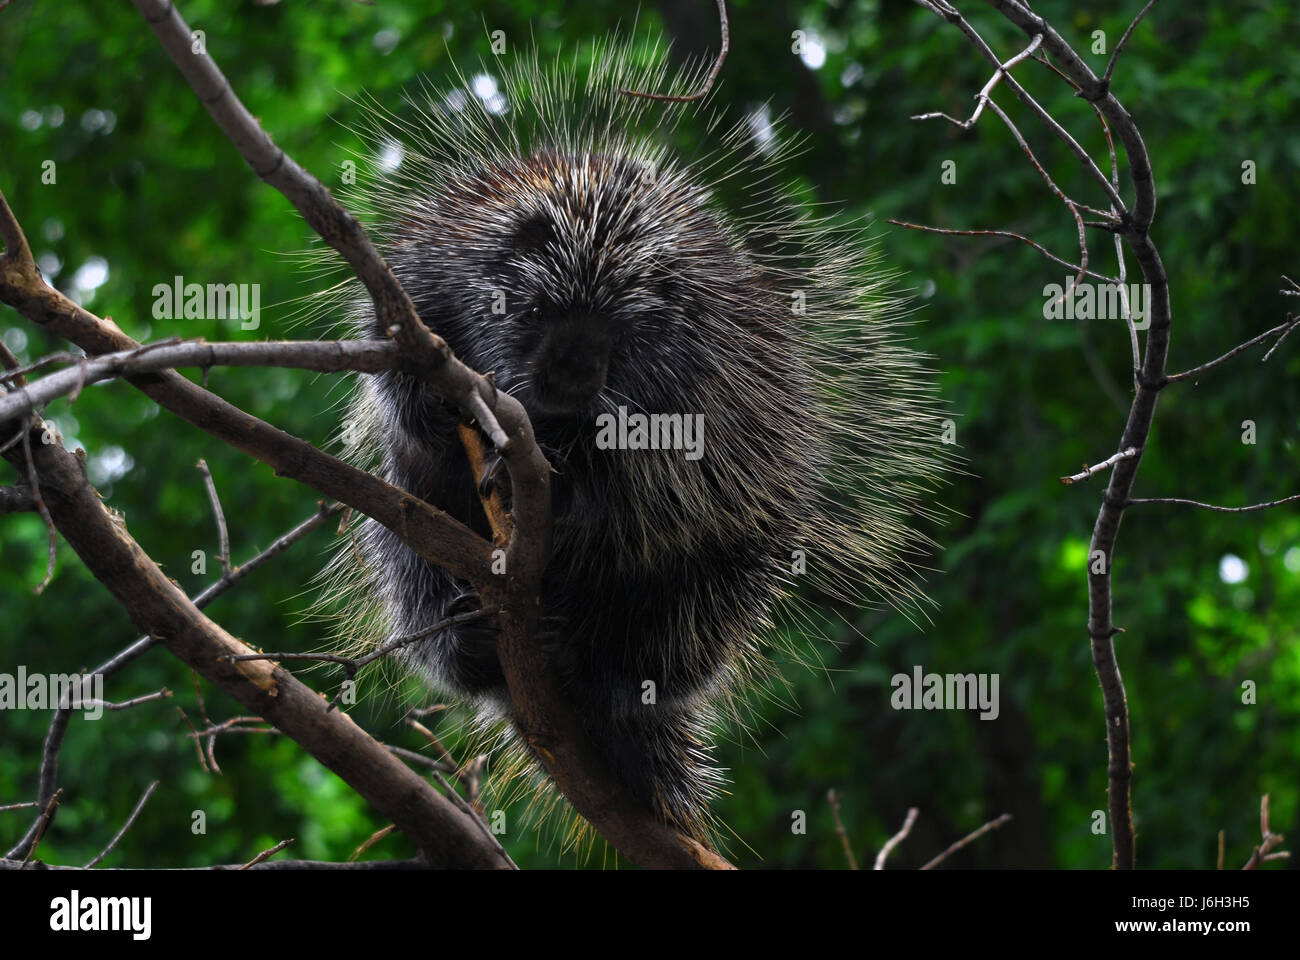 animal mammal hedge hedgehog animal mammal wood wild rodent branch wildlife - Stock Image